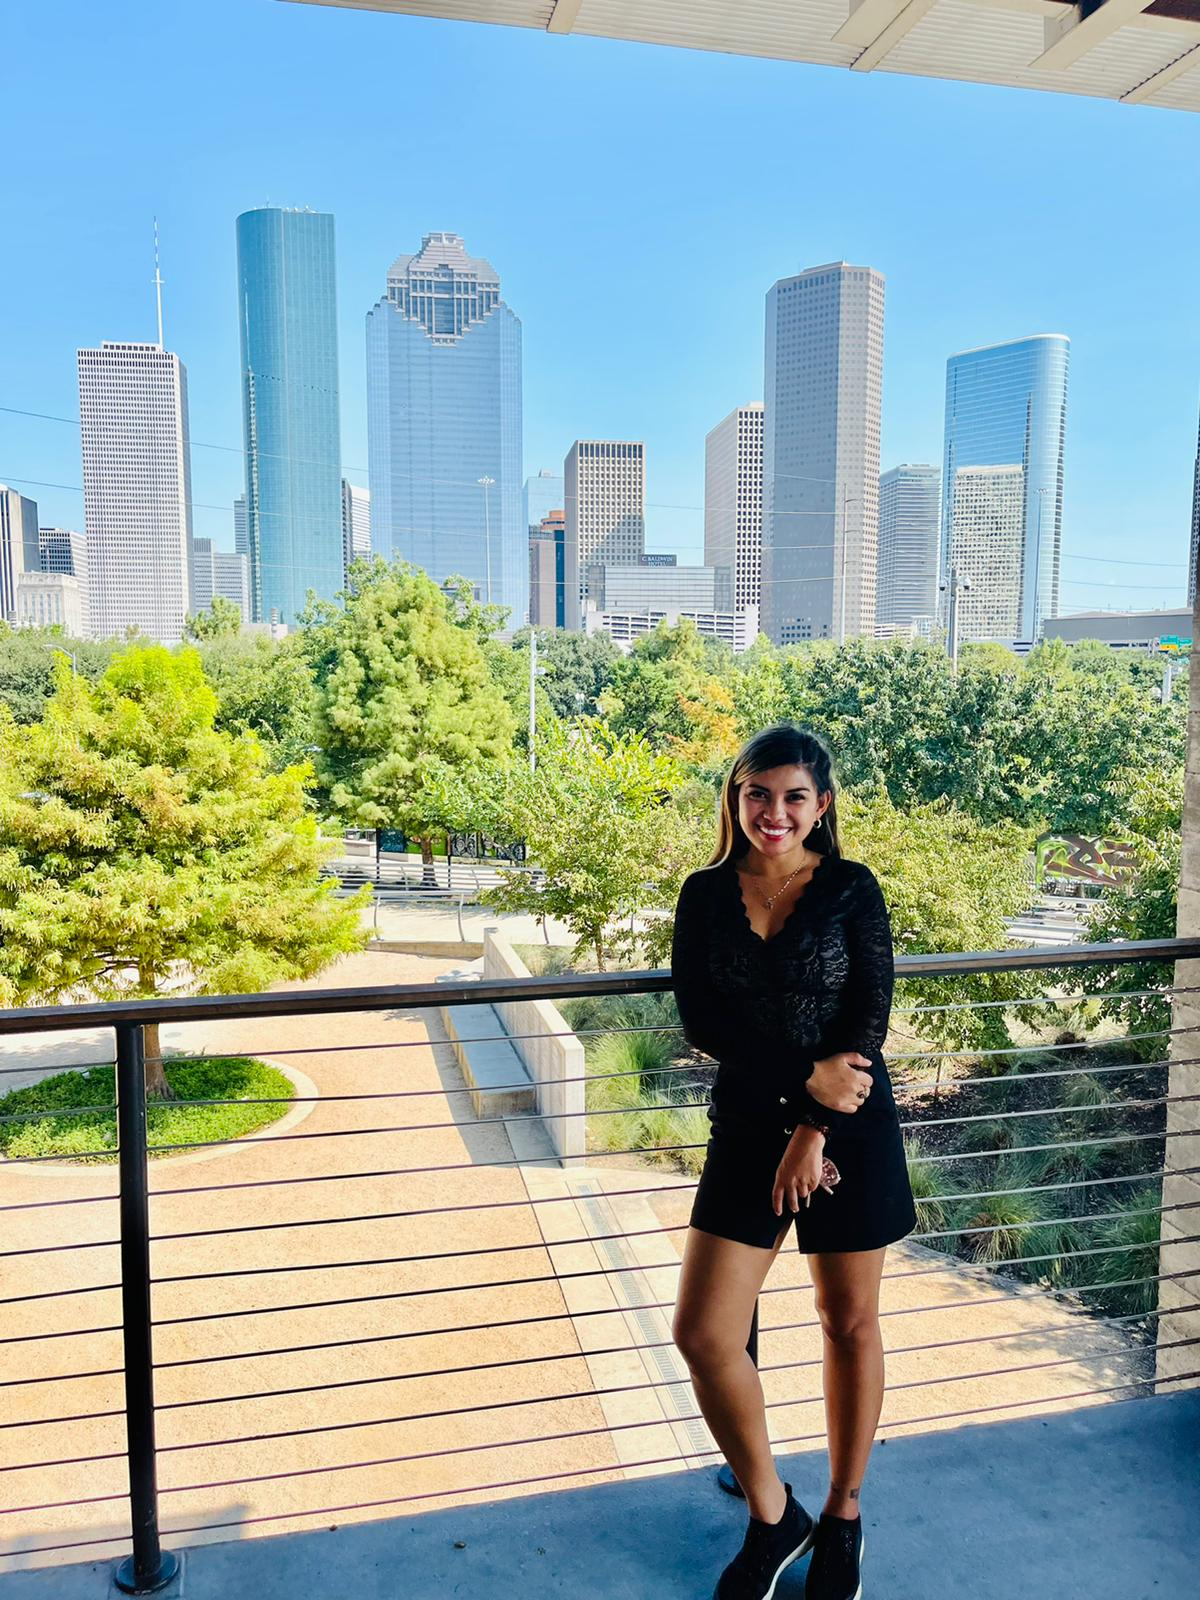 15 Best Things To Do in Houston, Texas